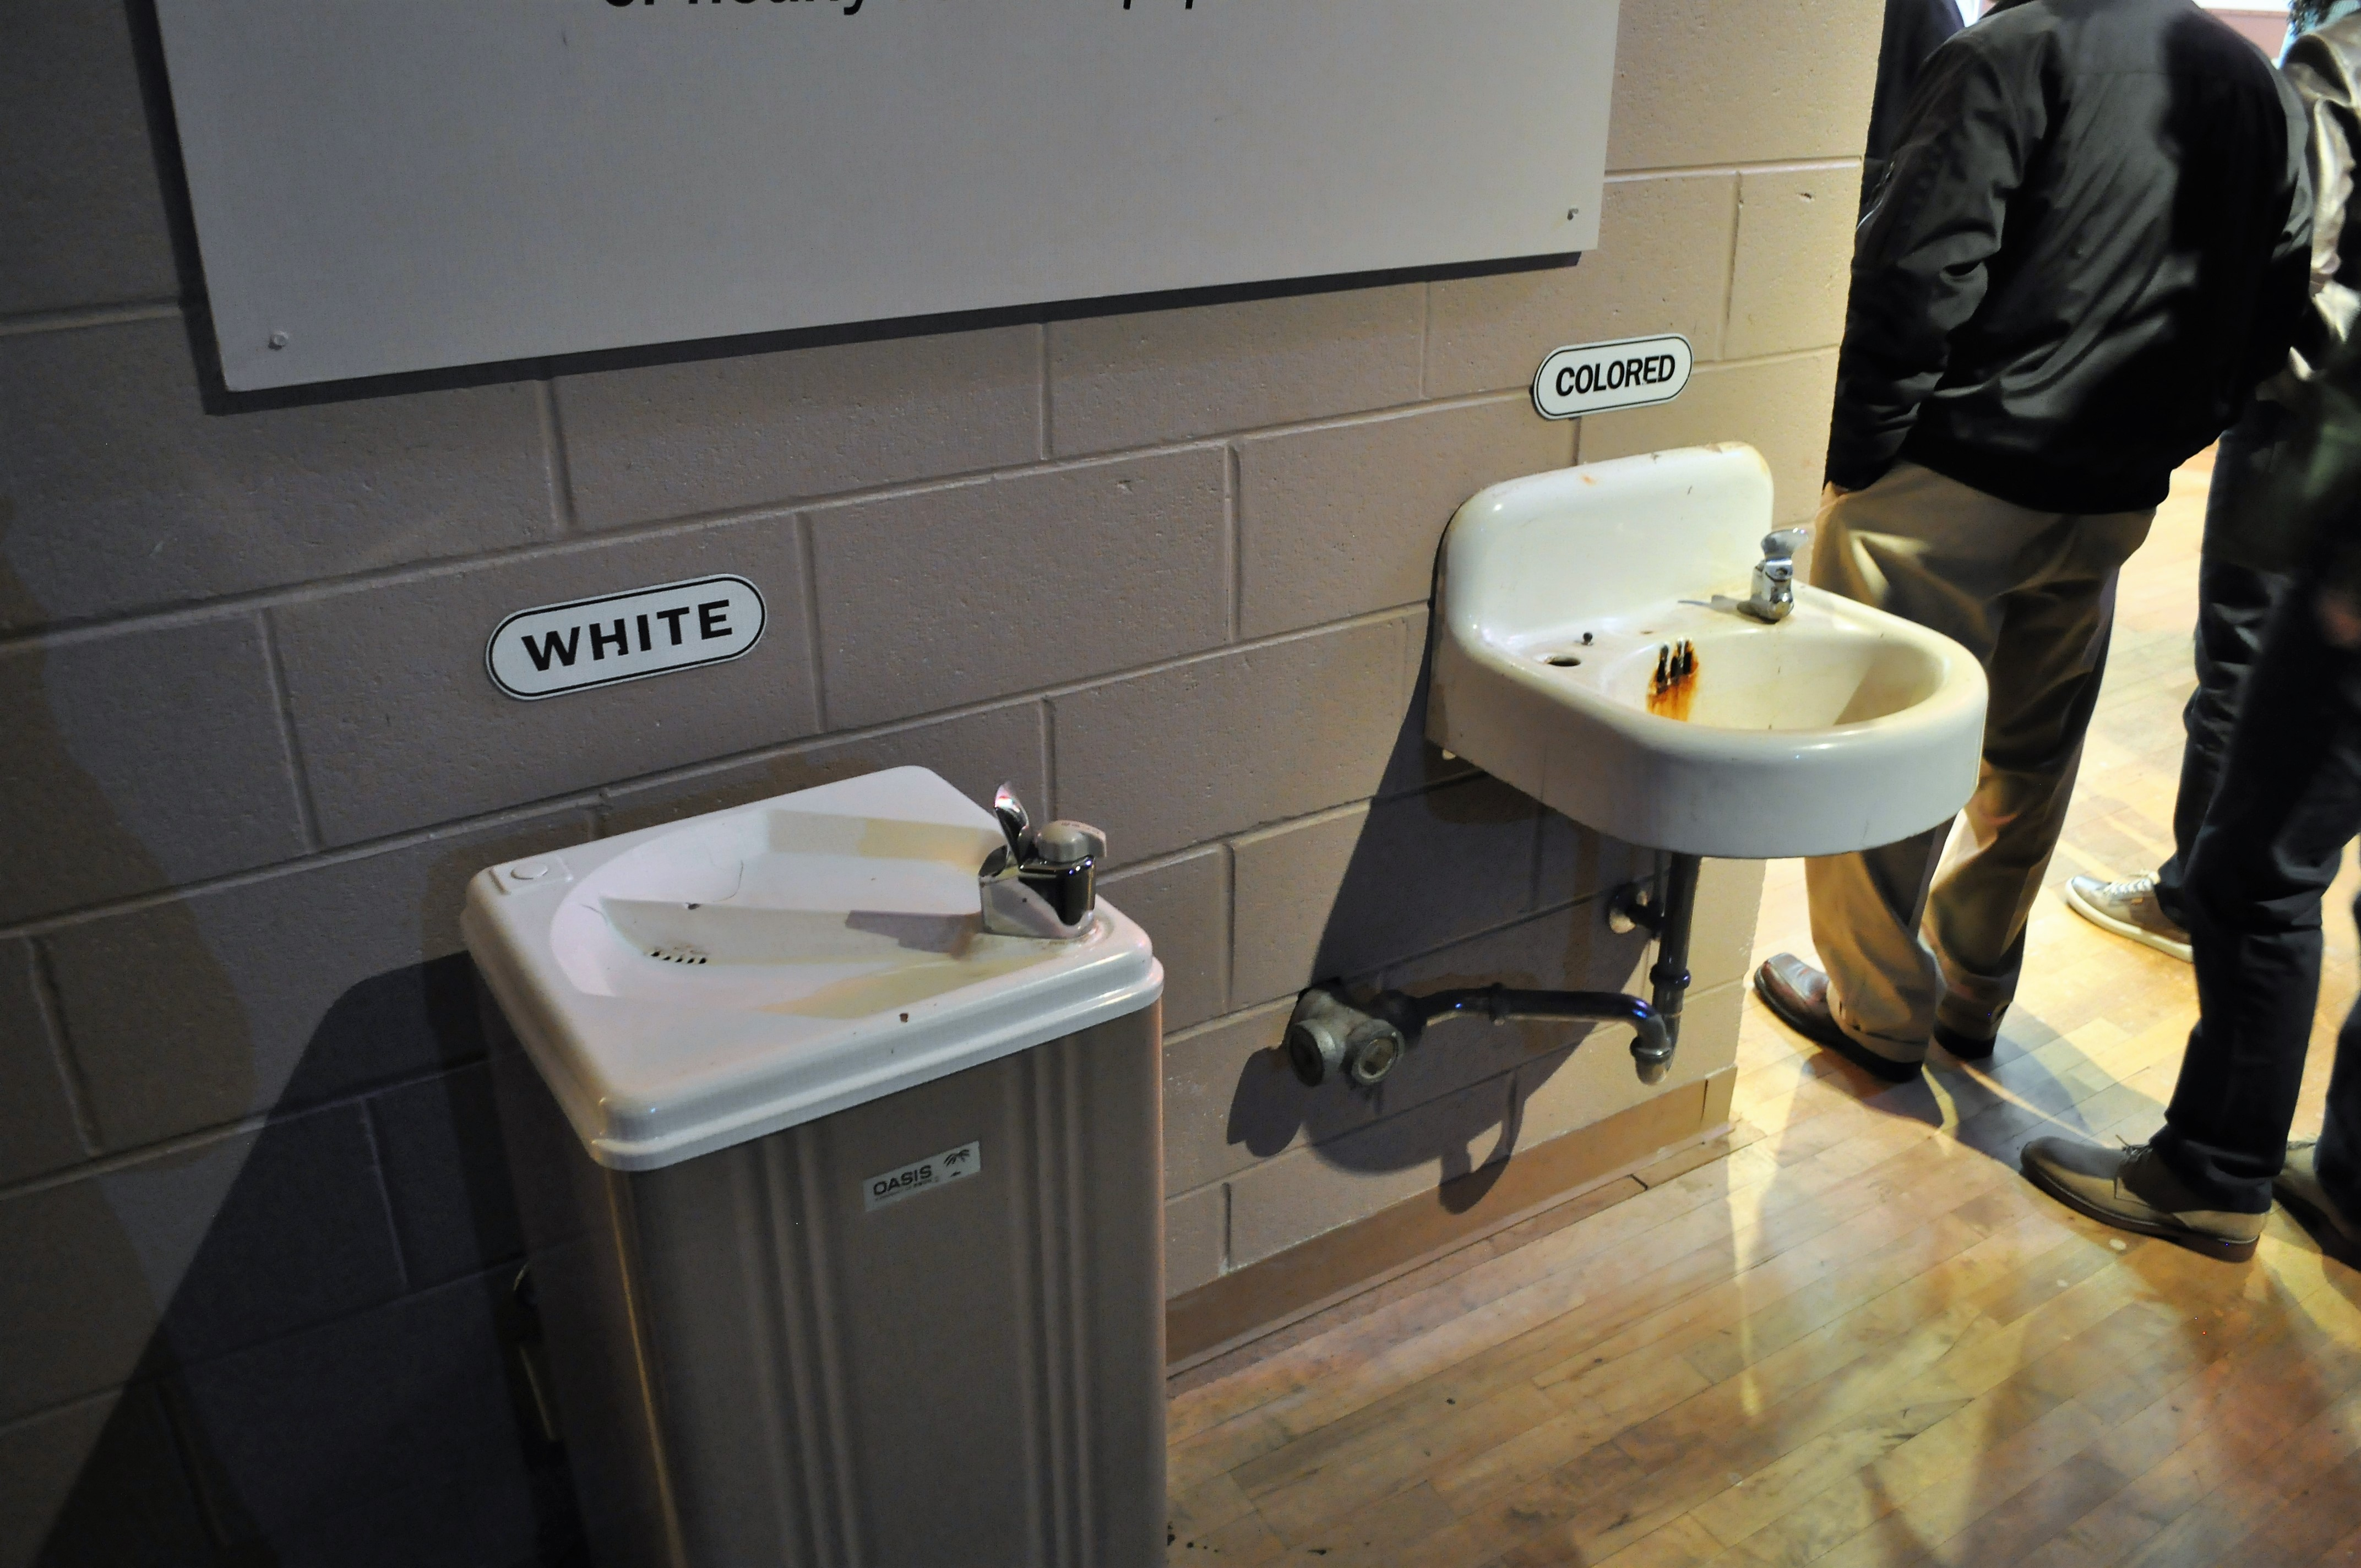 Water Fountains Symbolize 1960s Civil Rights Movement Article